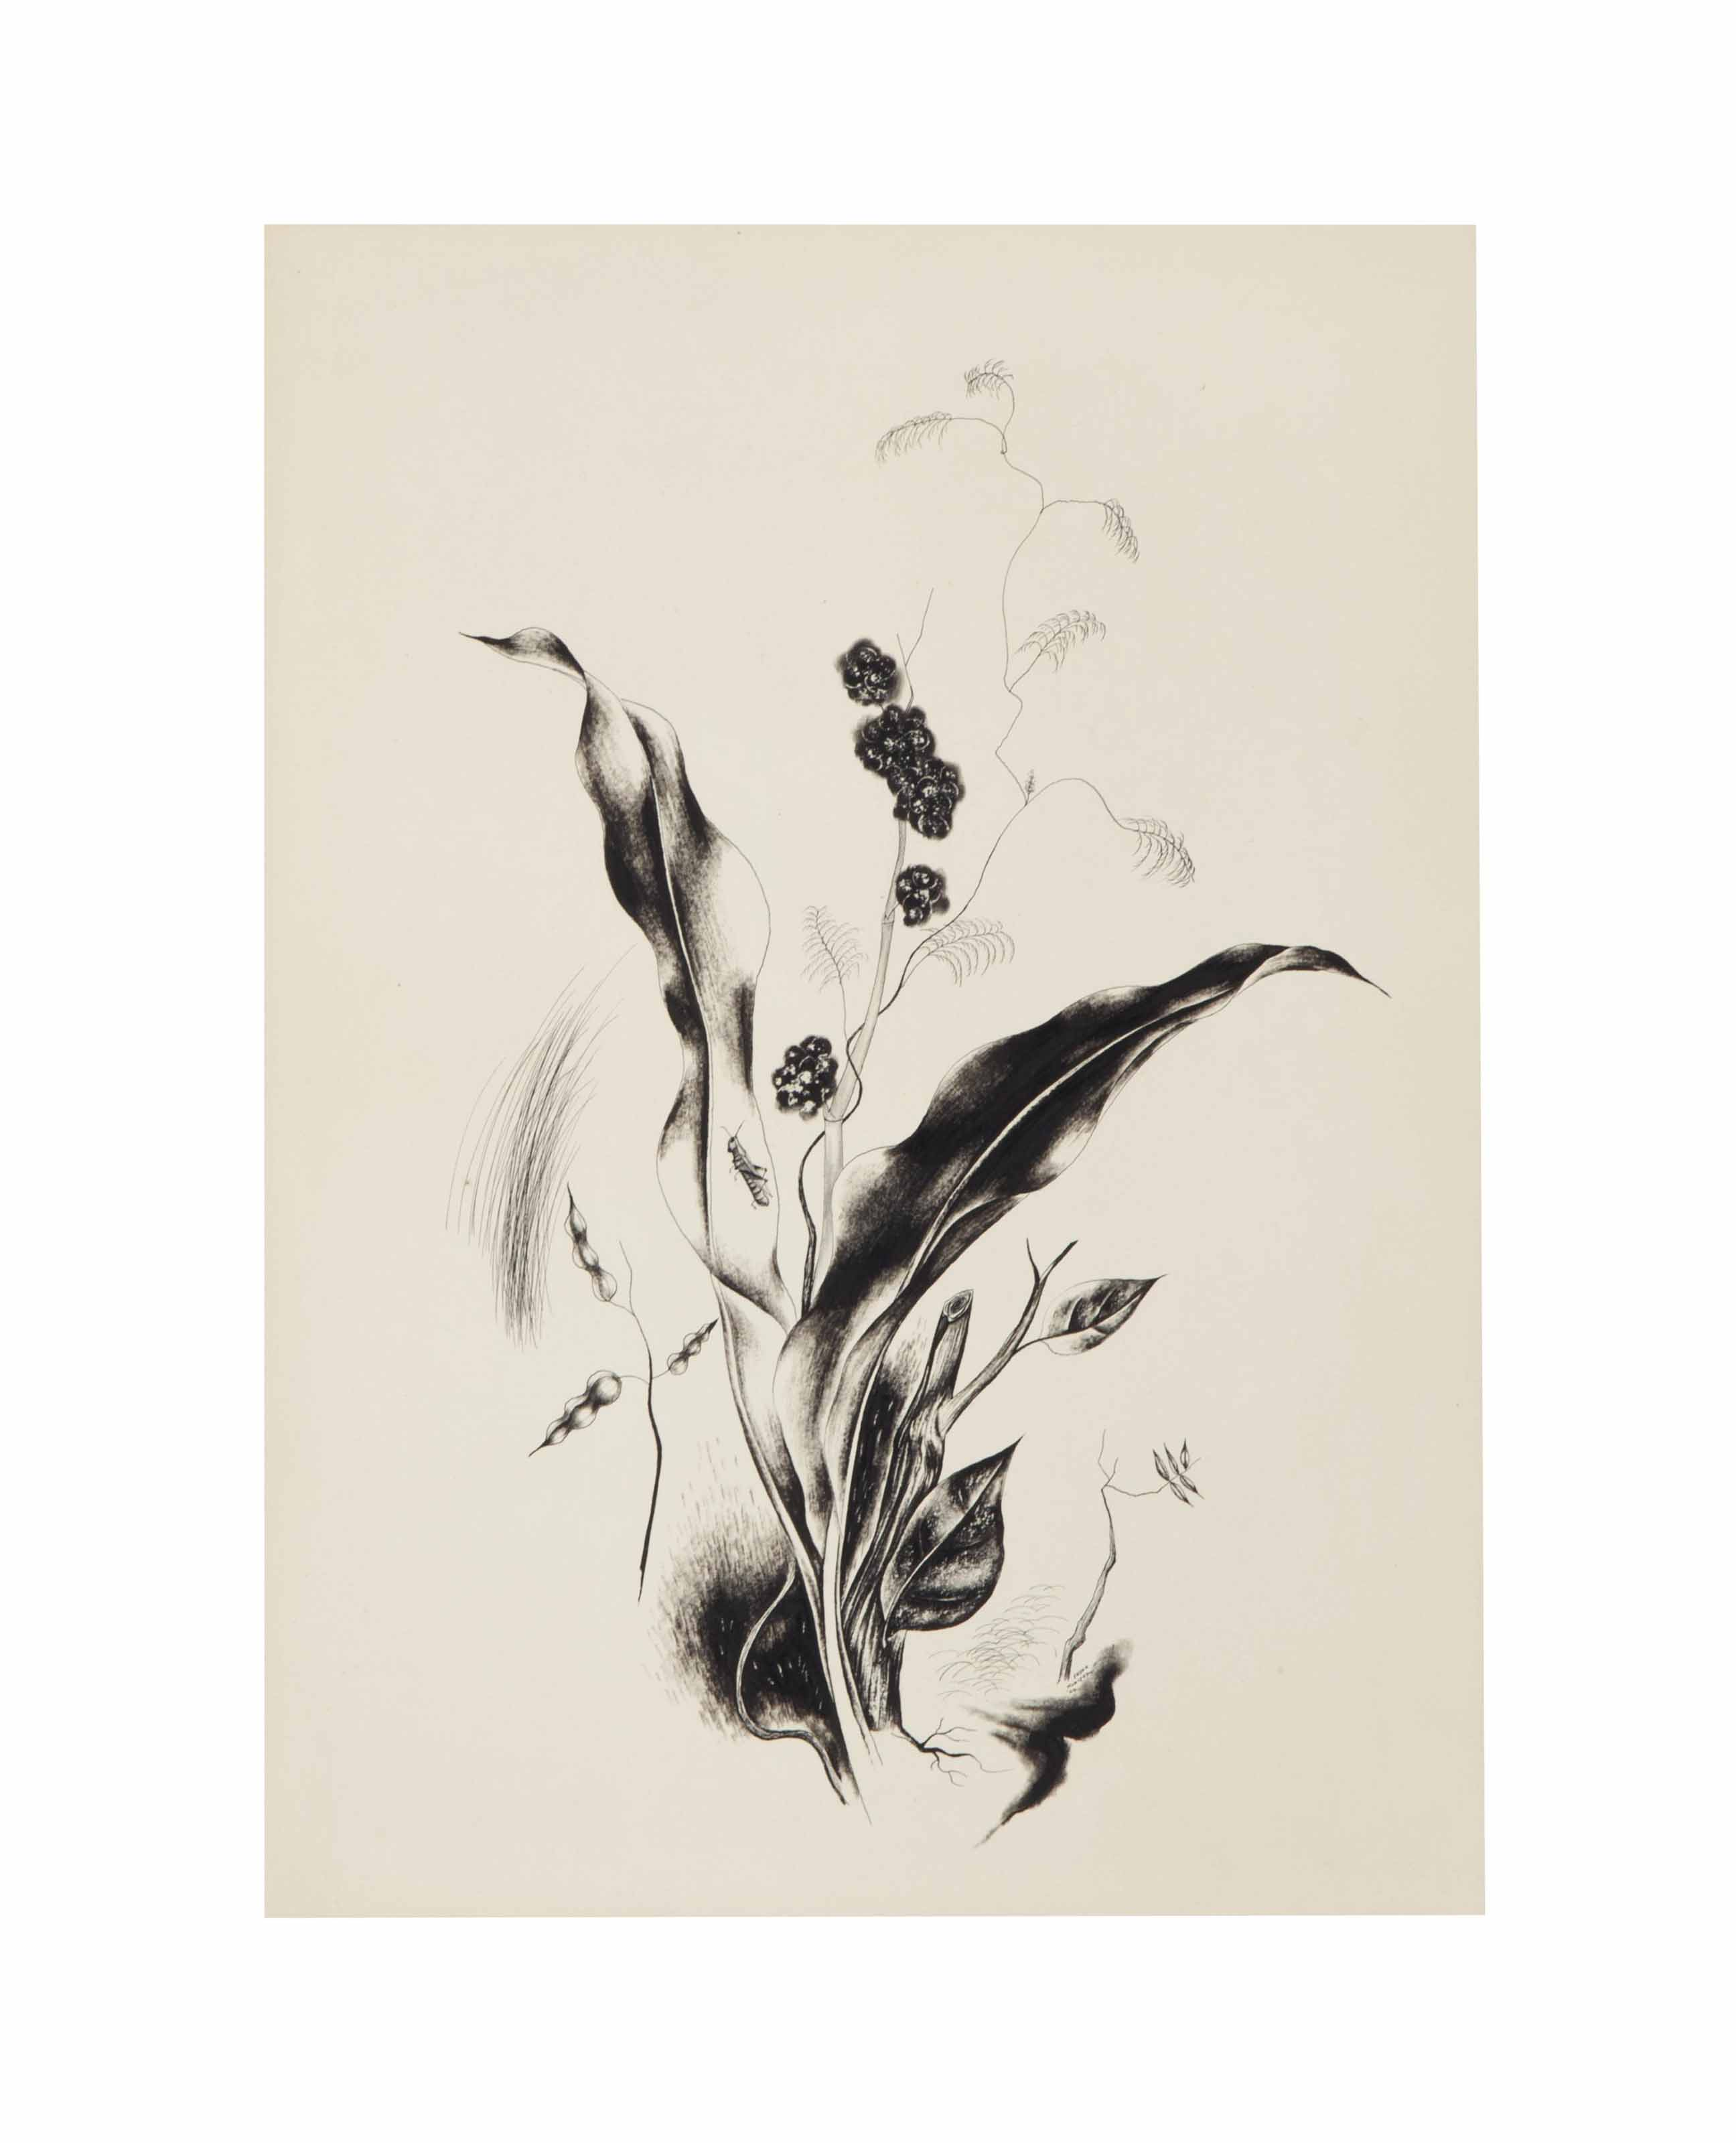 Untitled (Flower and Insect)